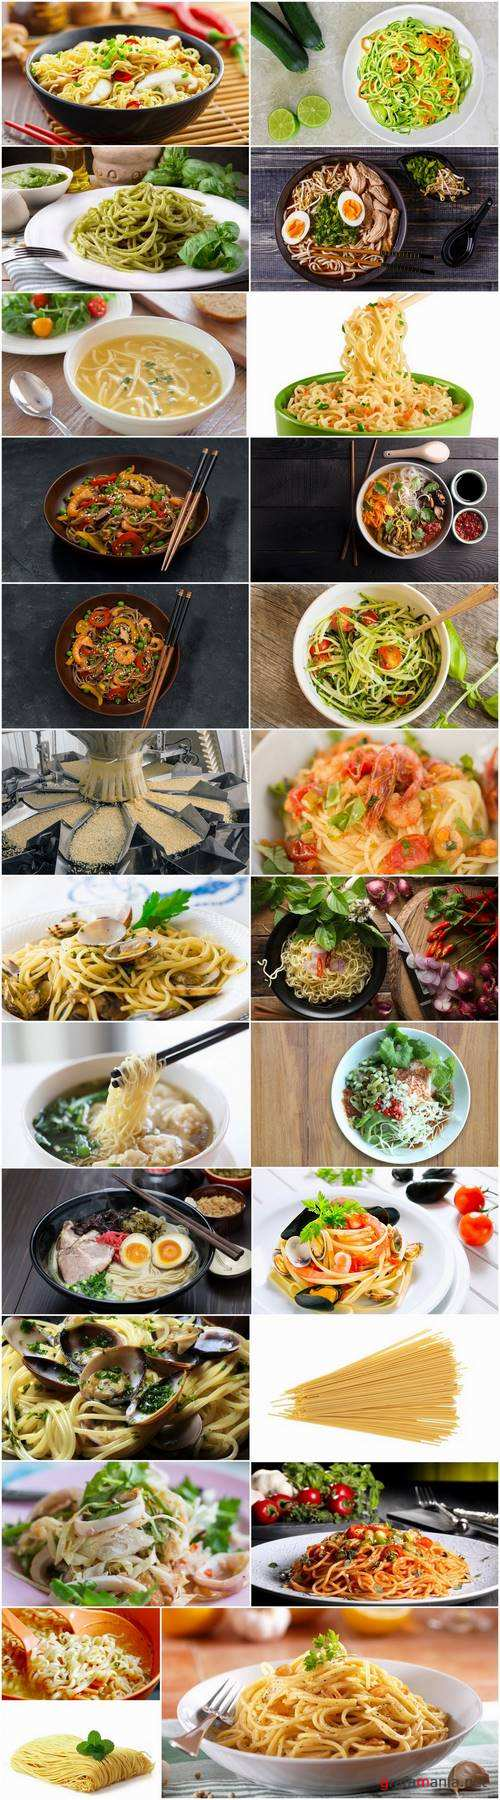 Vermicelli noodles soup pasta spaghetti food meal 25 HQ Jpeg